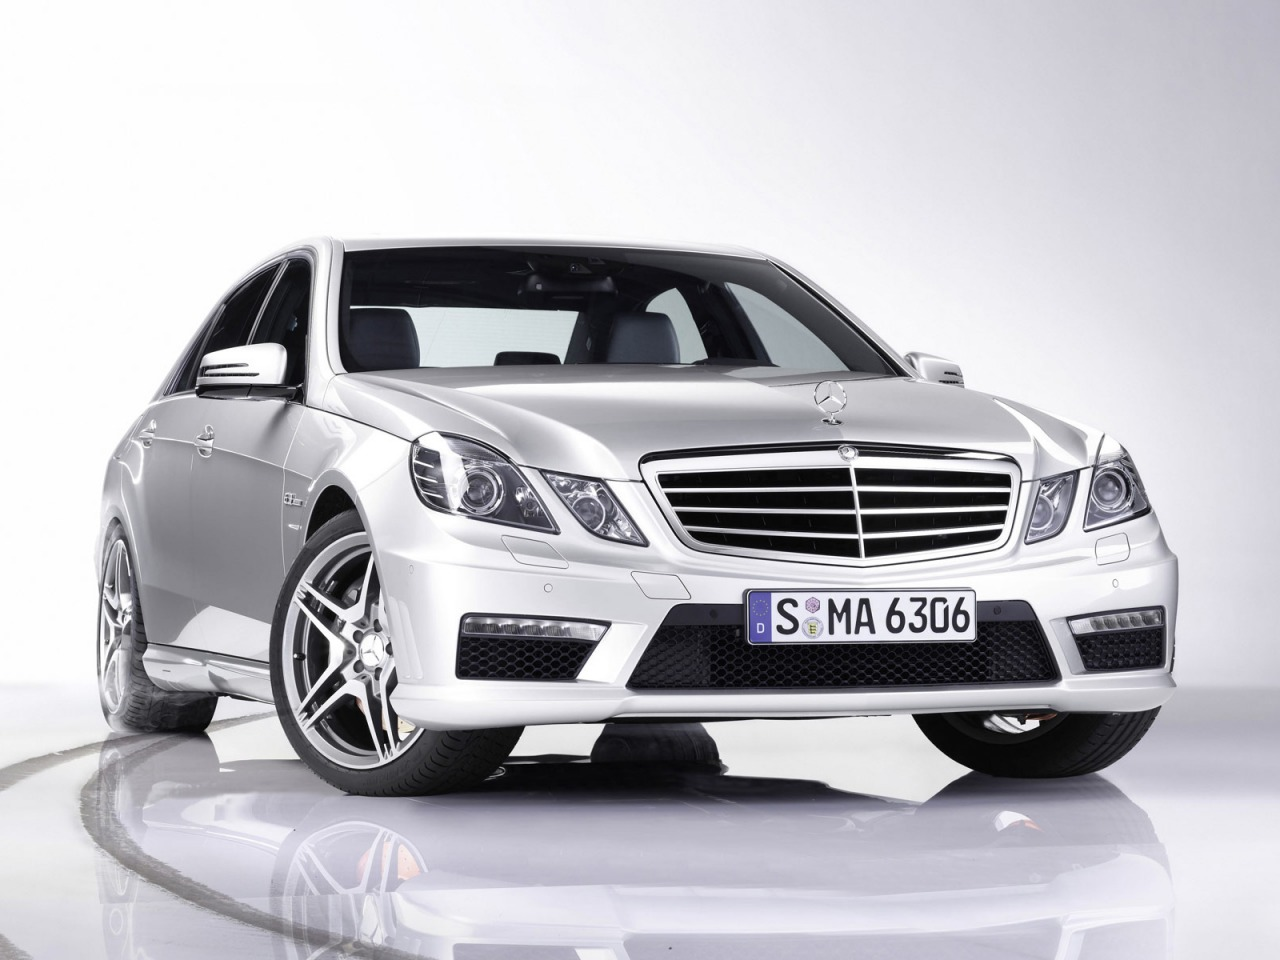 Mercedes-Benz C-Class named 2015 World Car of the Year - Autoblog